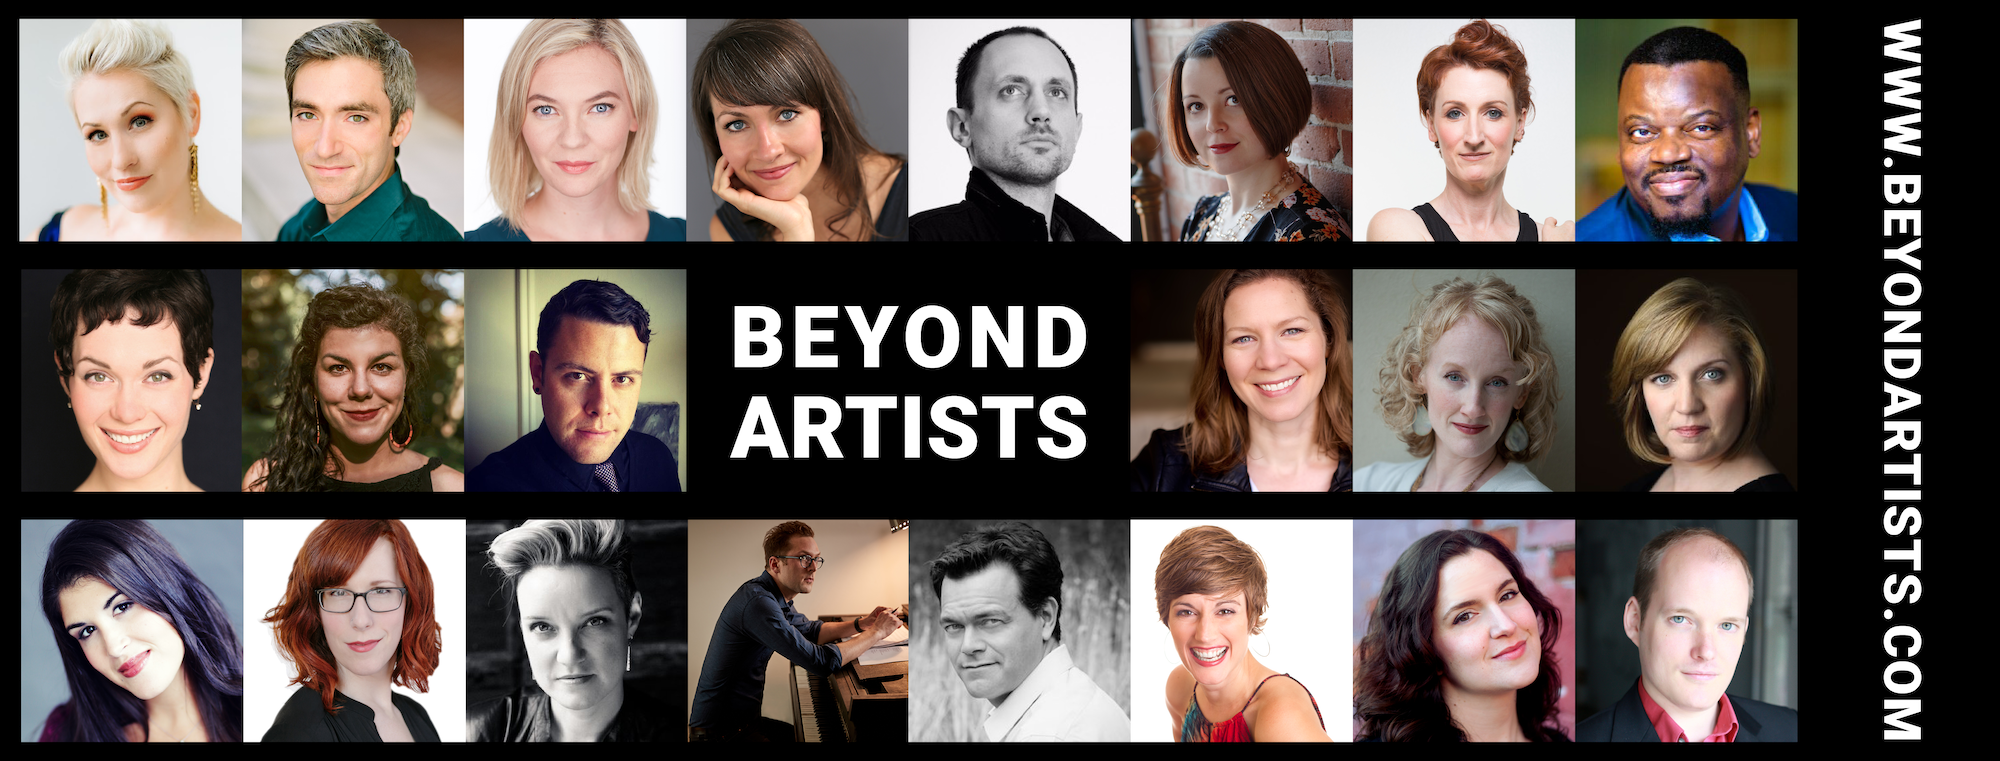 Beyond Artists FB Cover May 22 2019.png